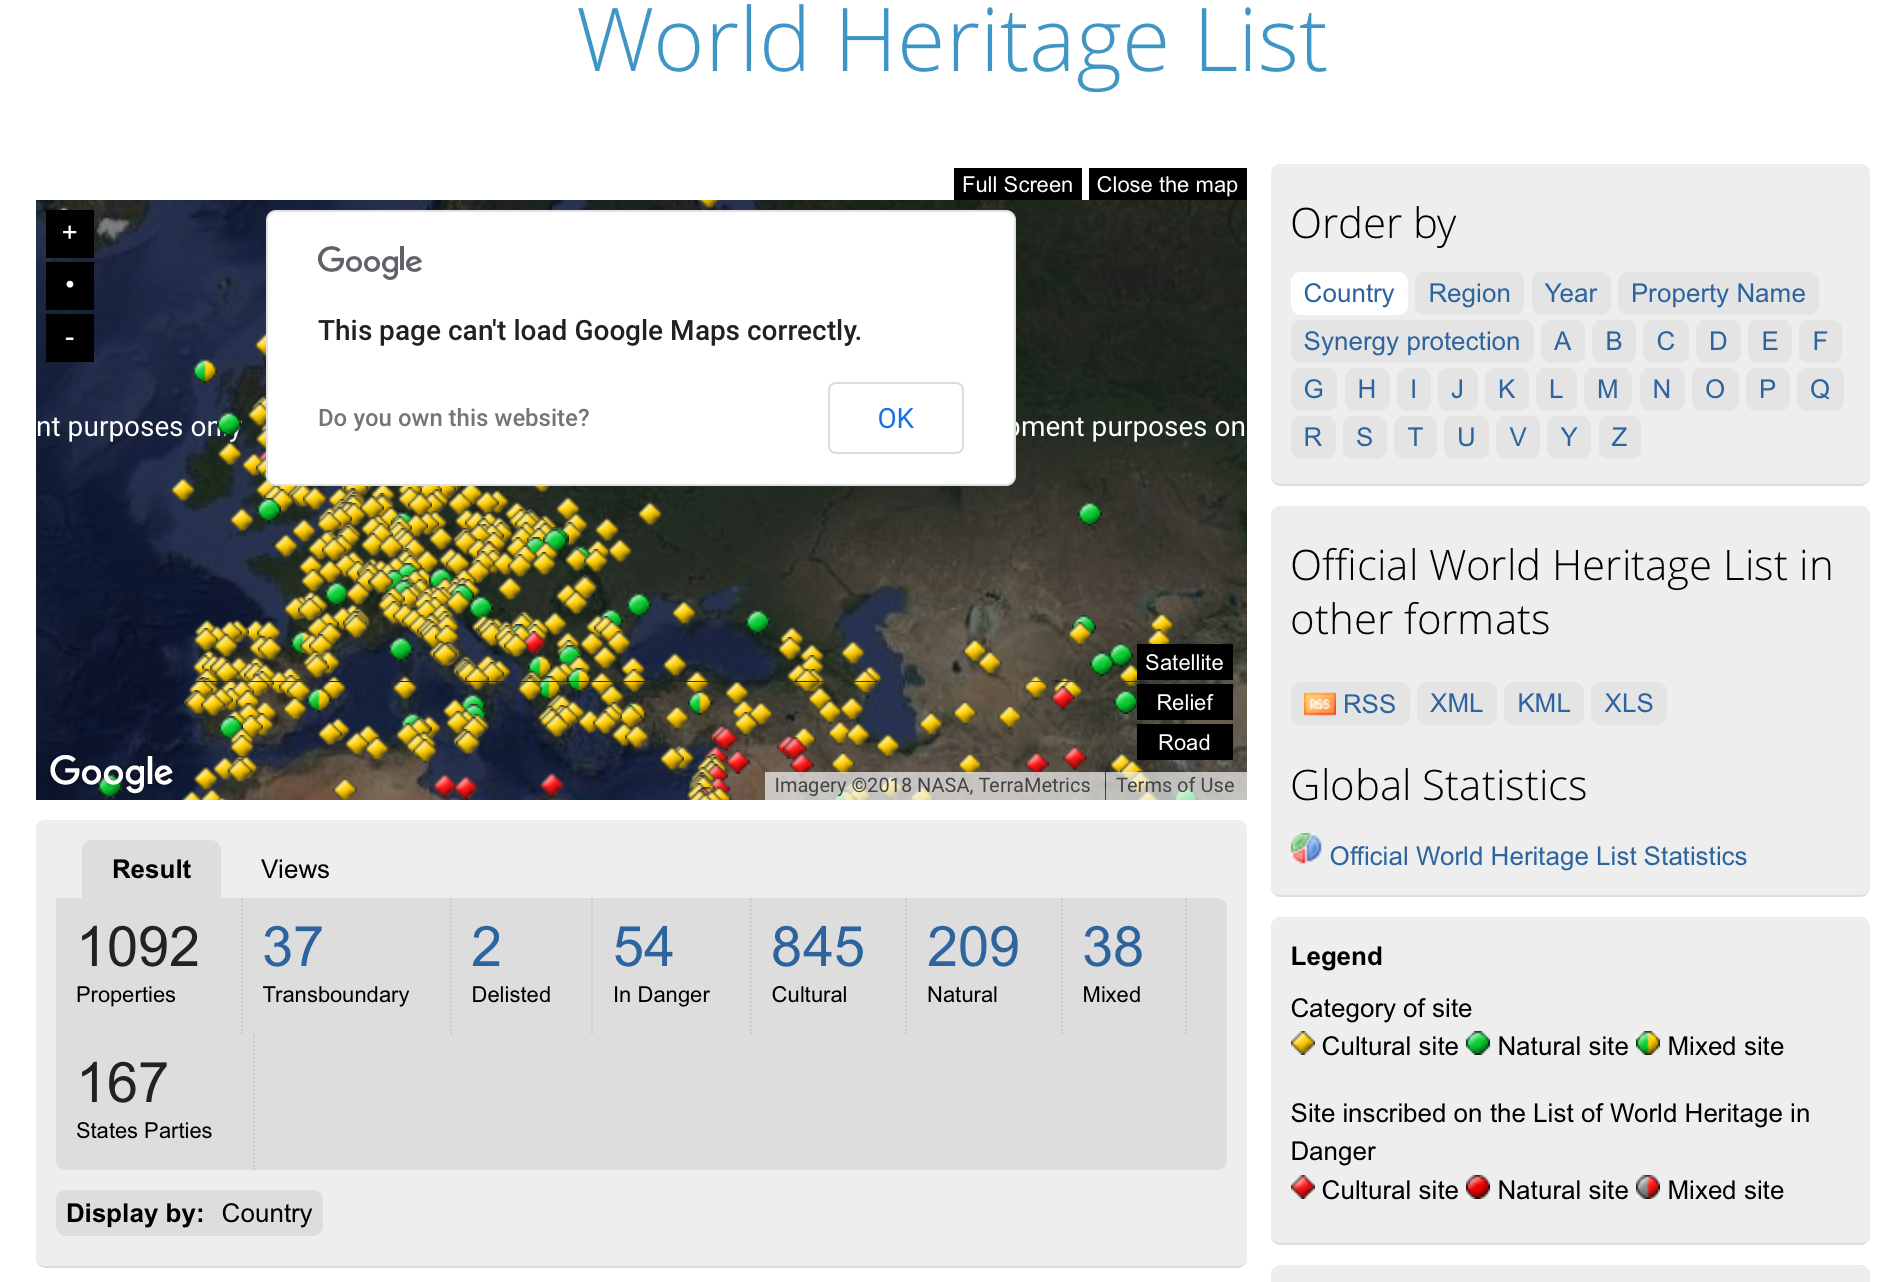 UNESCO World Heritage List Google Map, broken